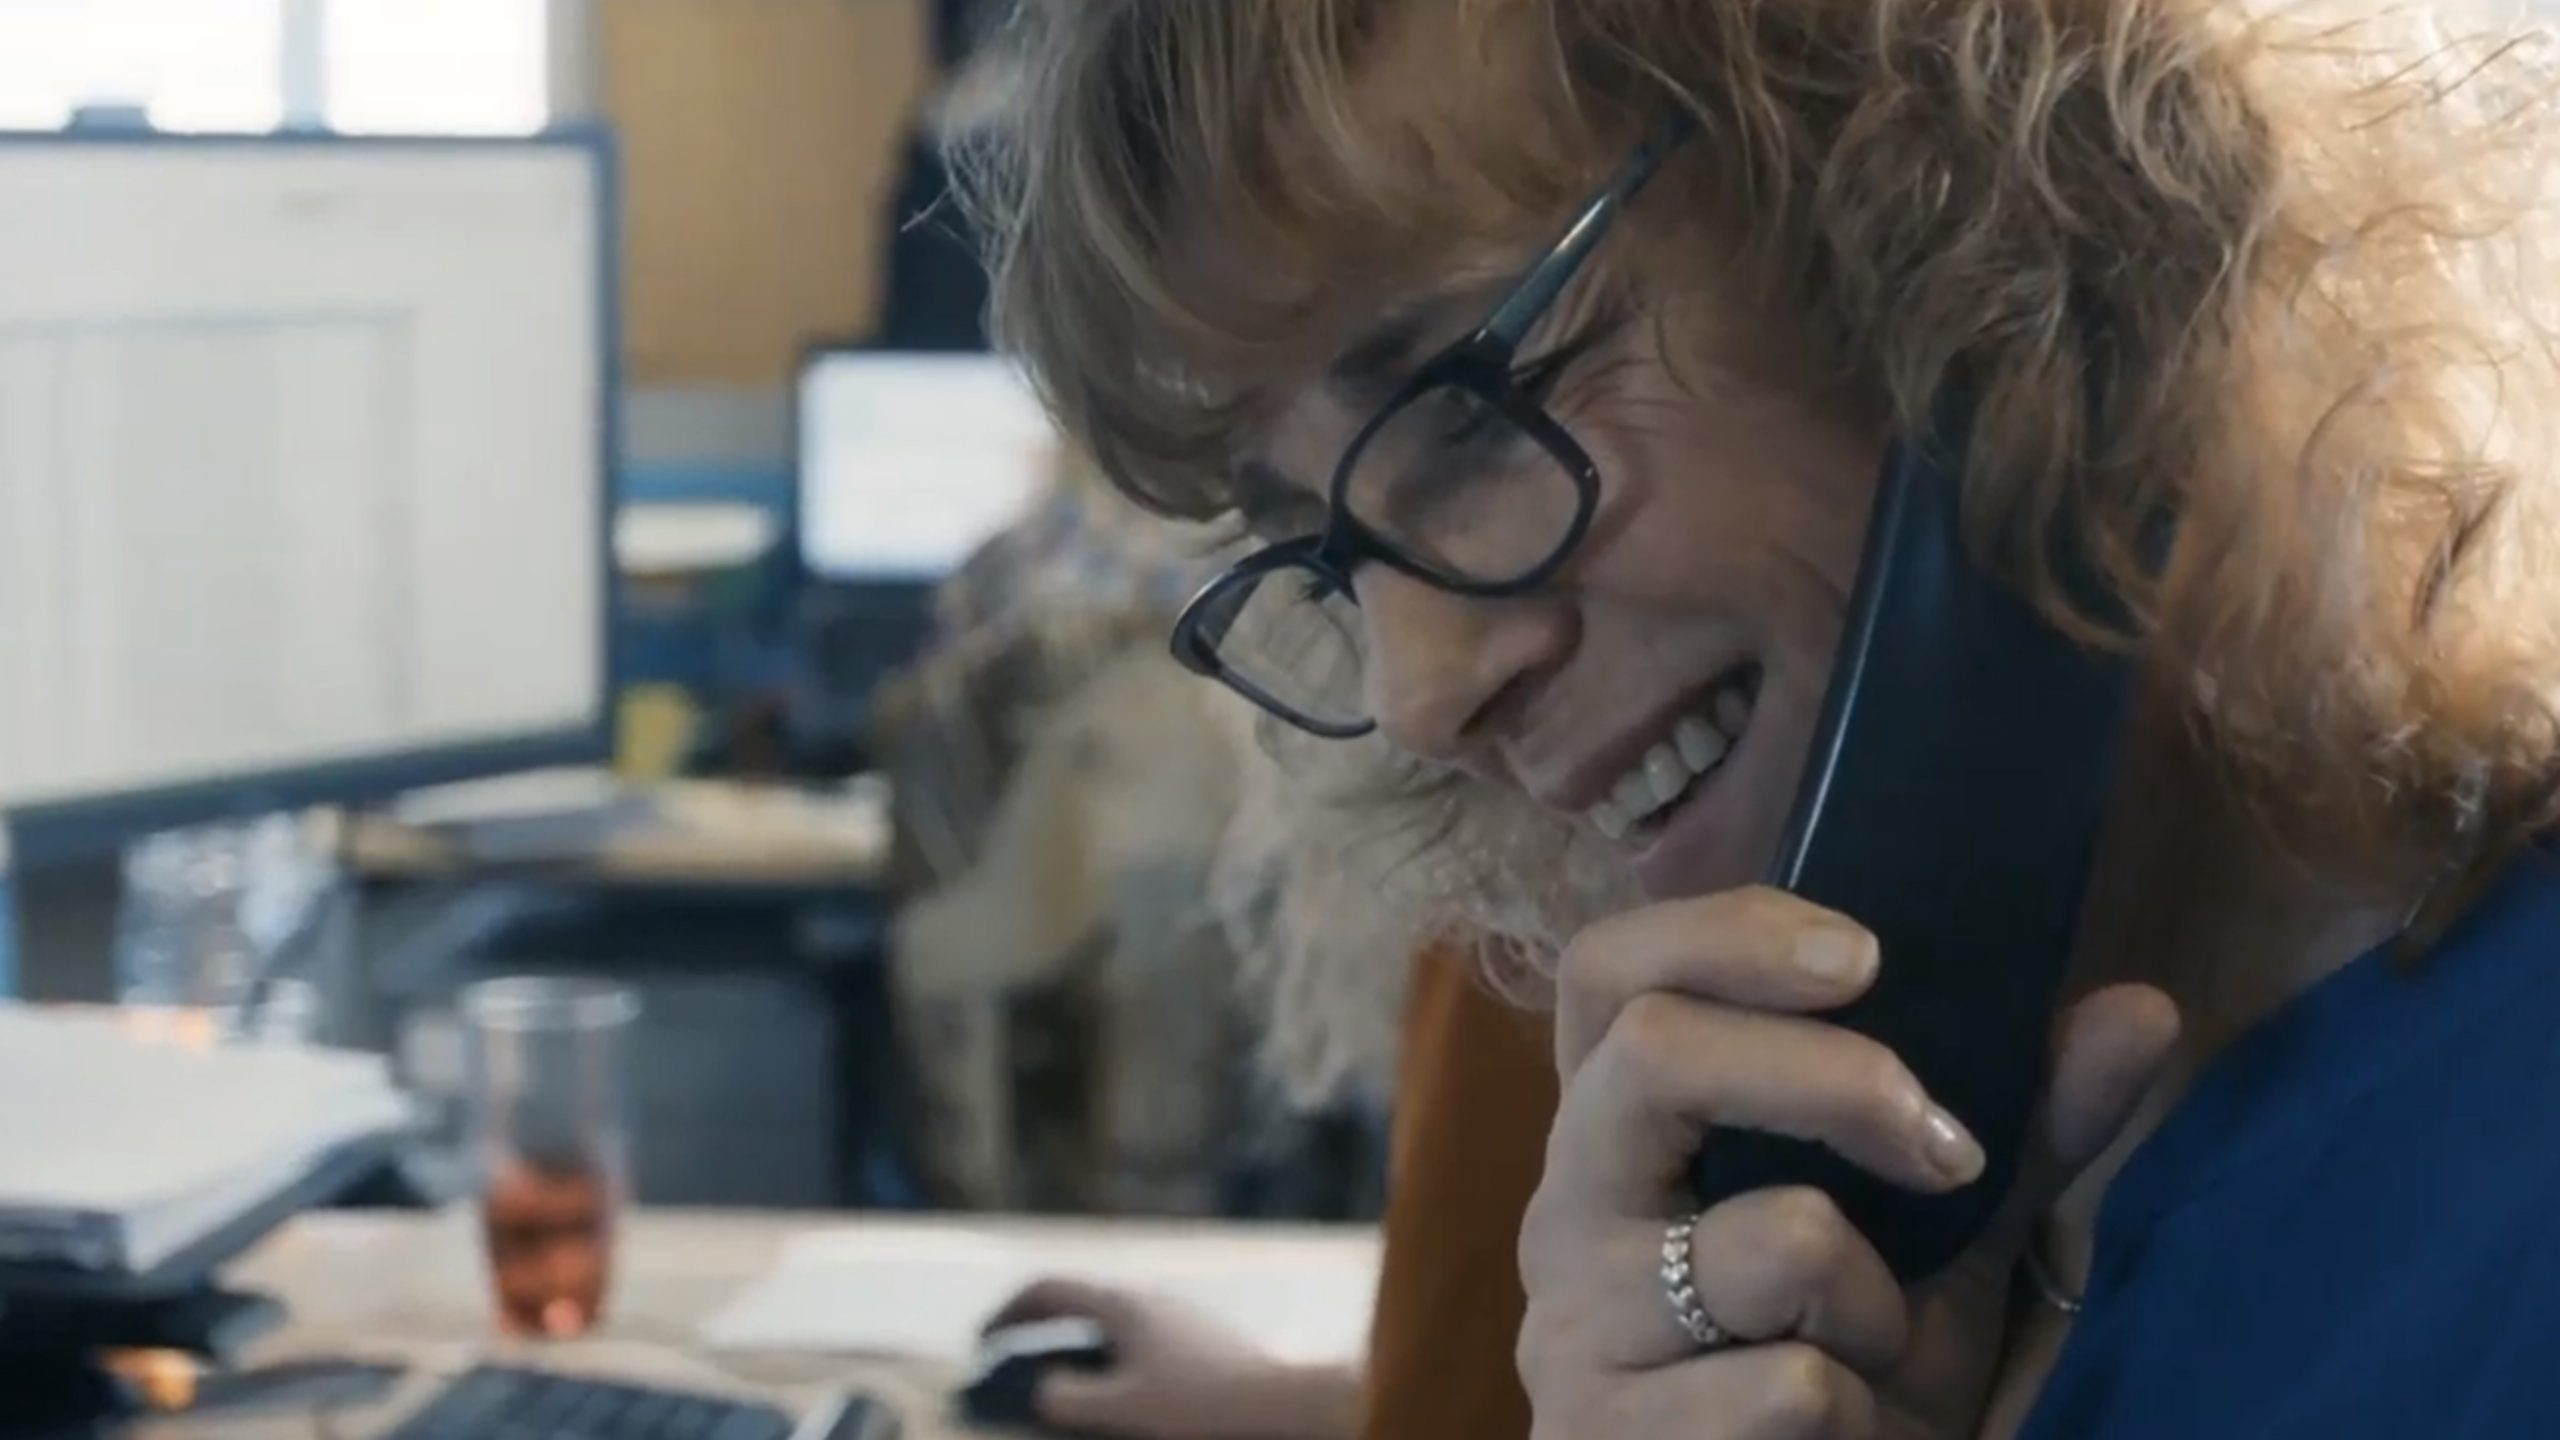 Bupa dental care support centre worker on phone